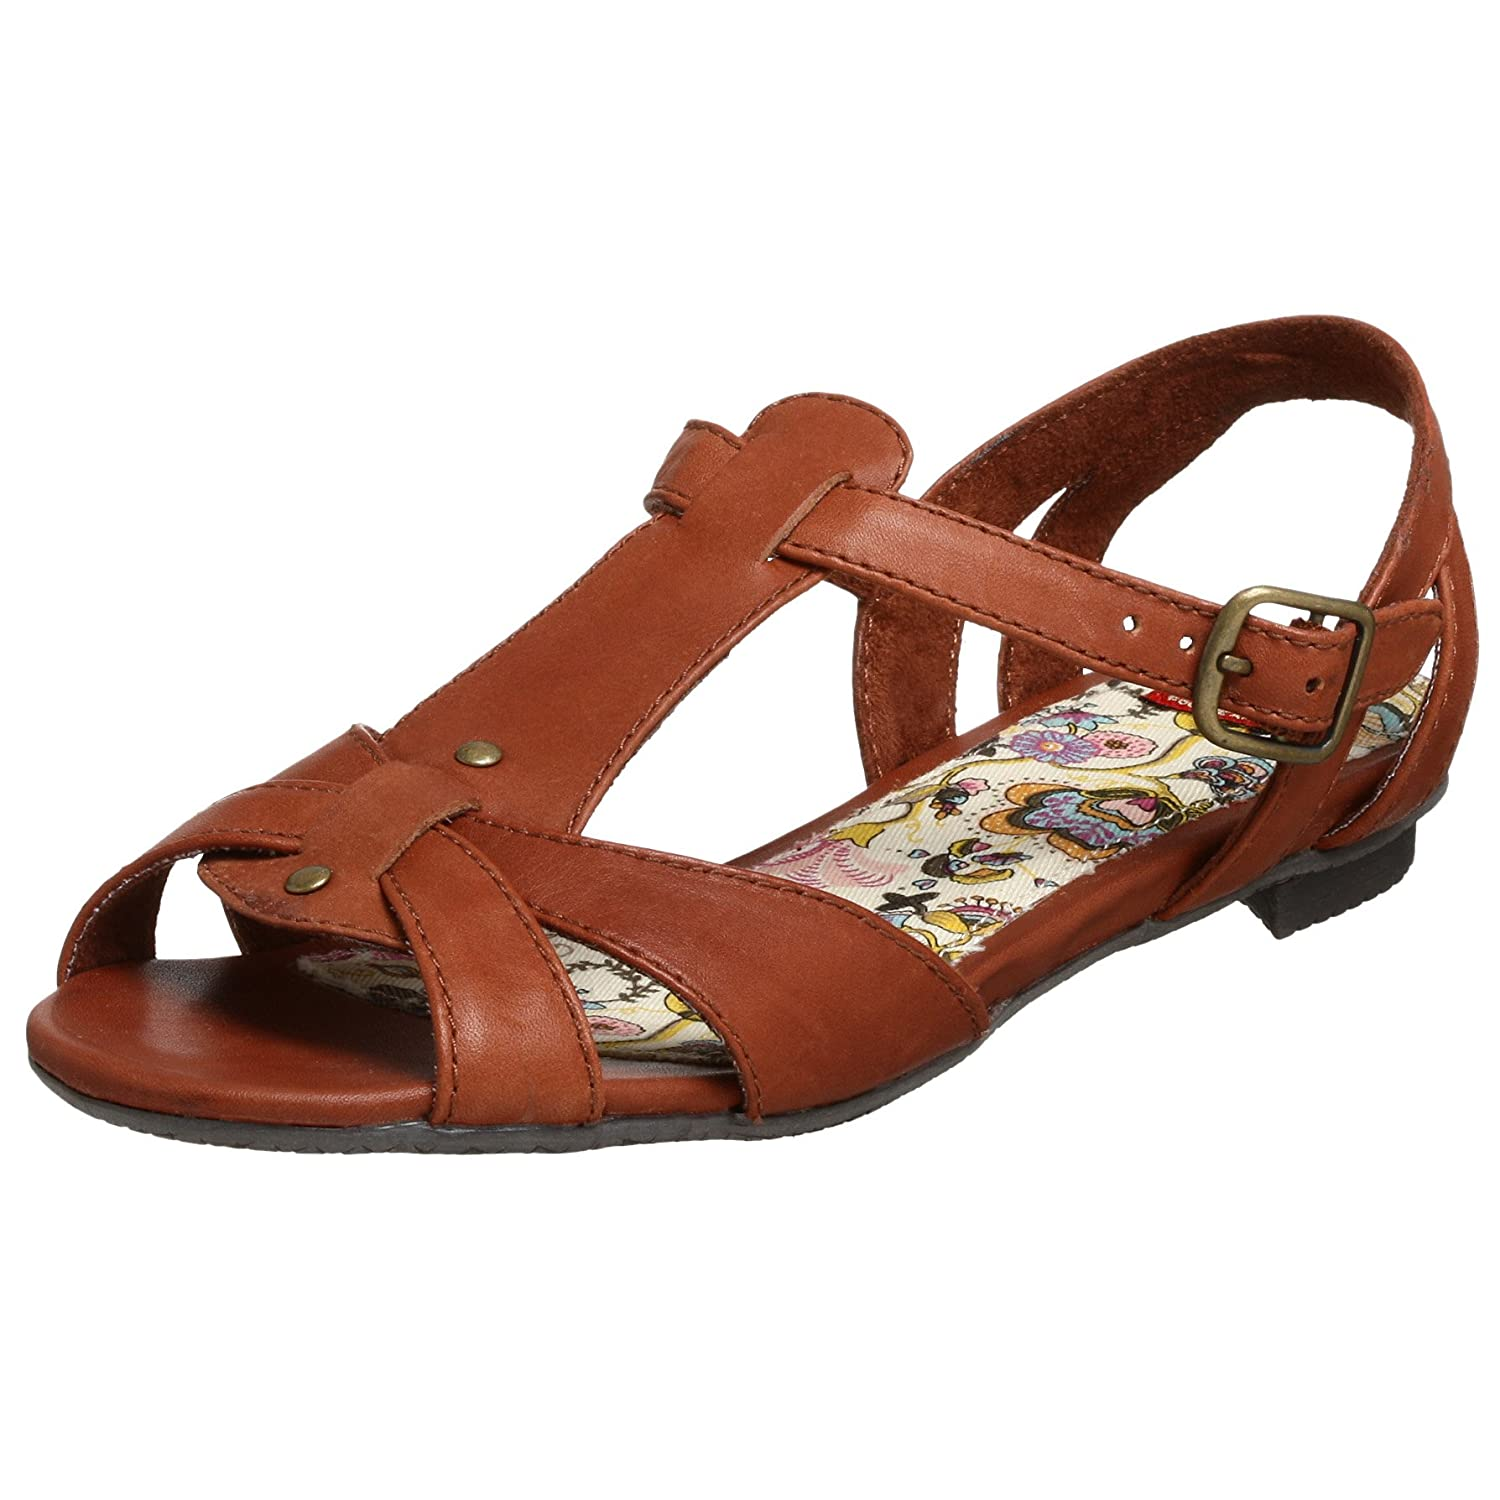 BC Footwear Women's Tsunami Sandal - Free Overnight Shipping & Return Shipping: Endless.com